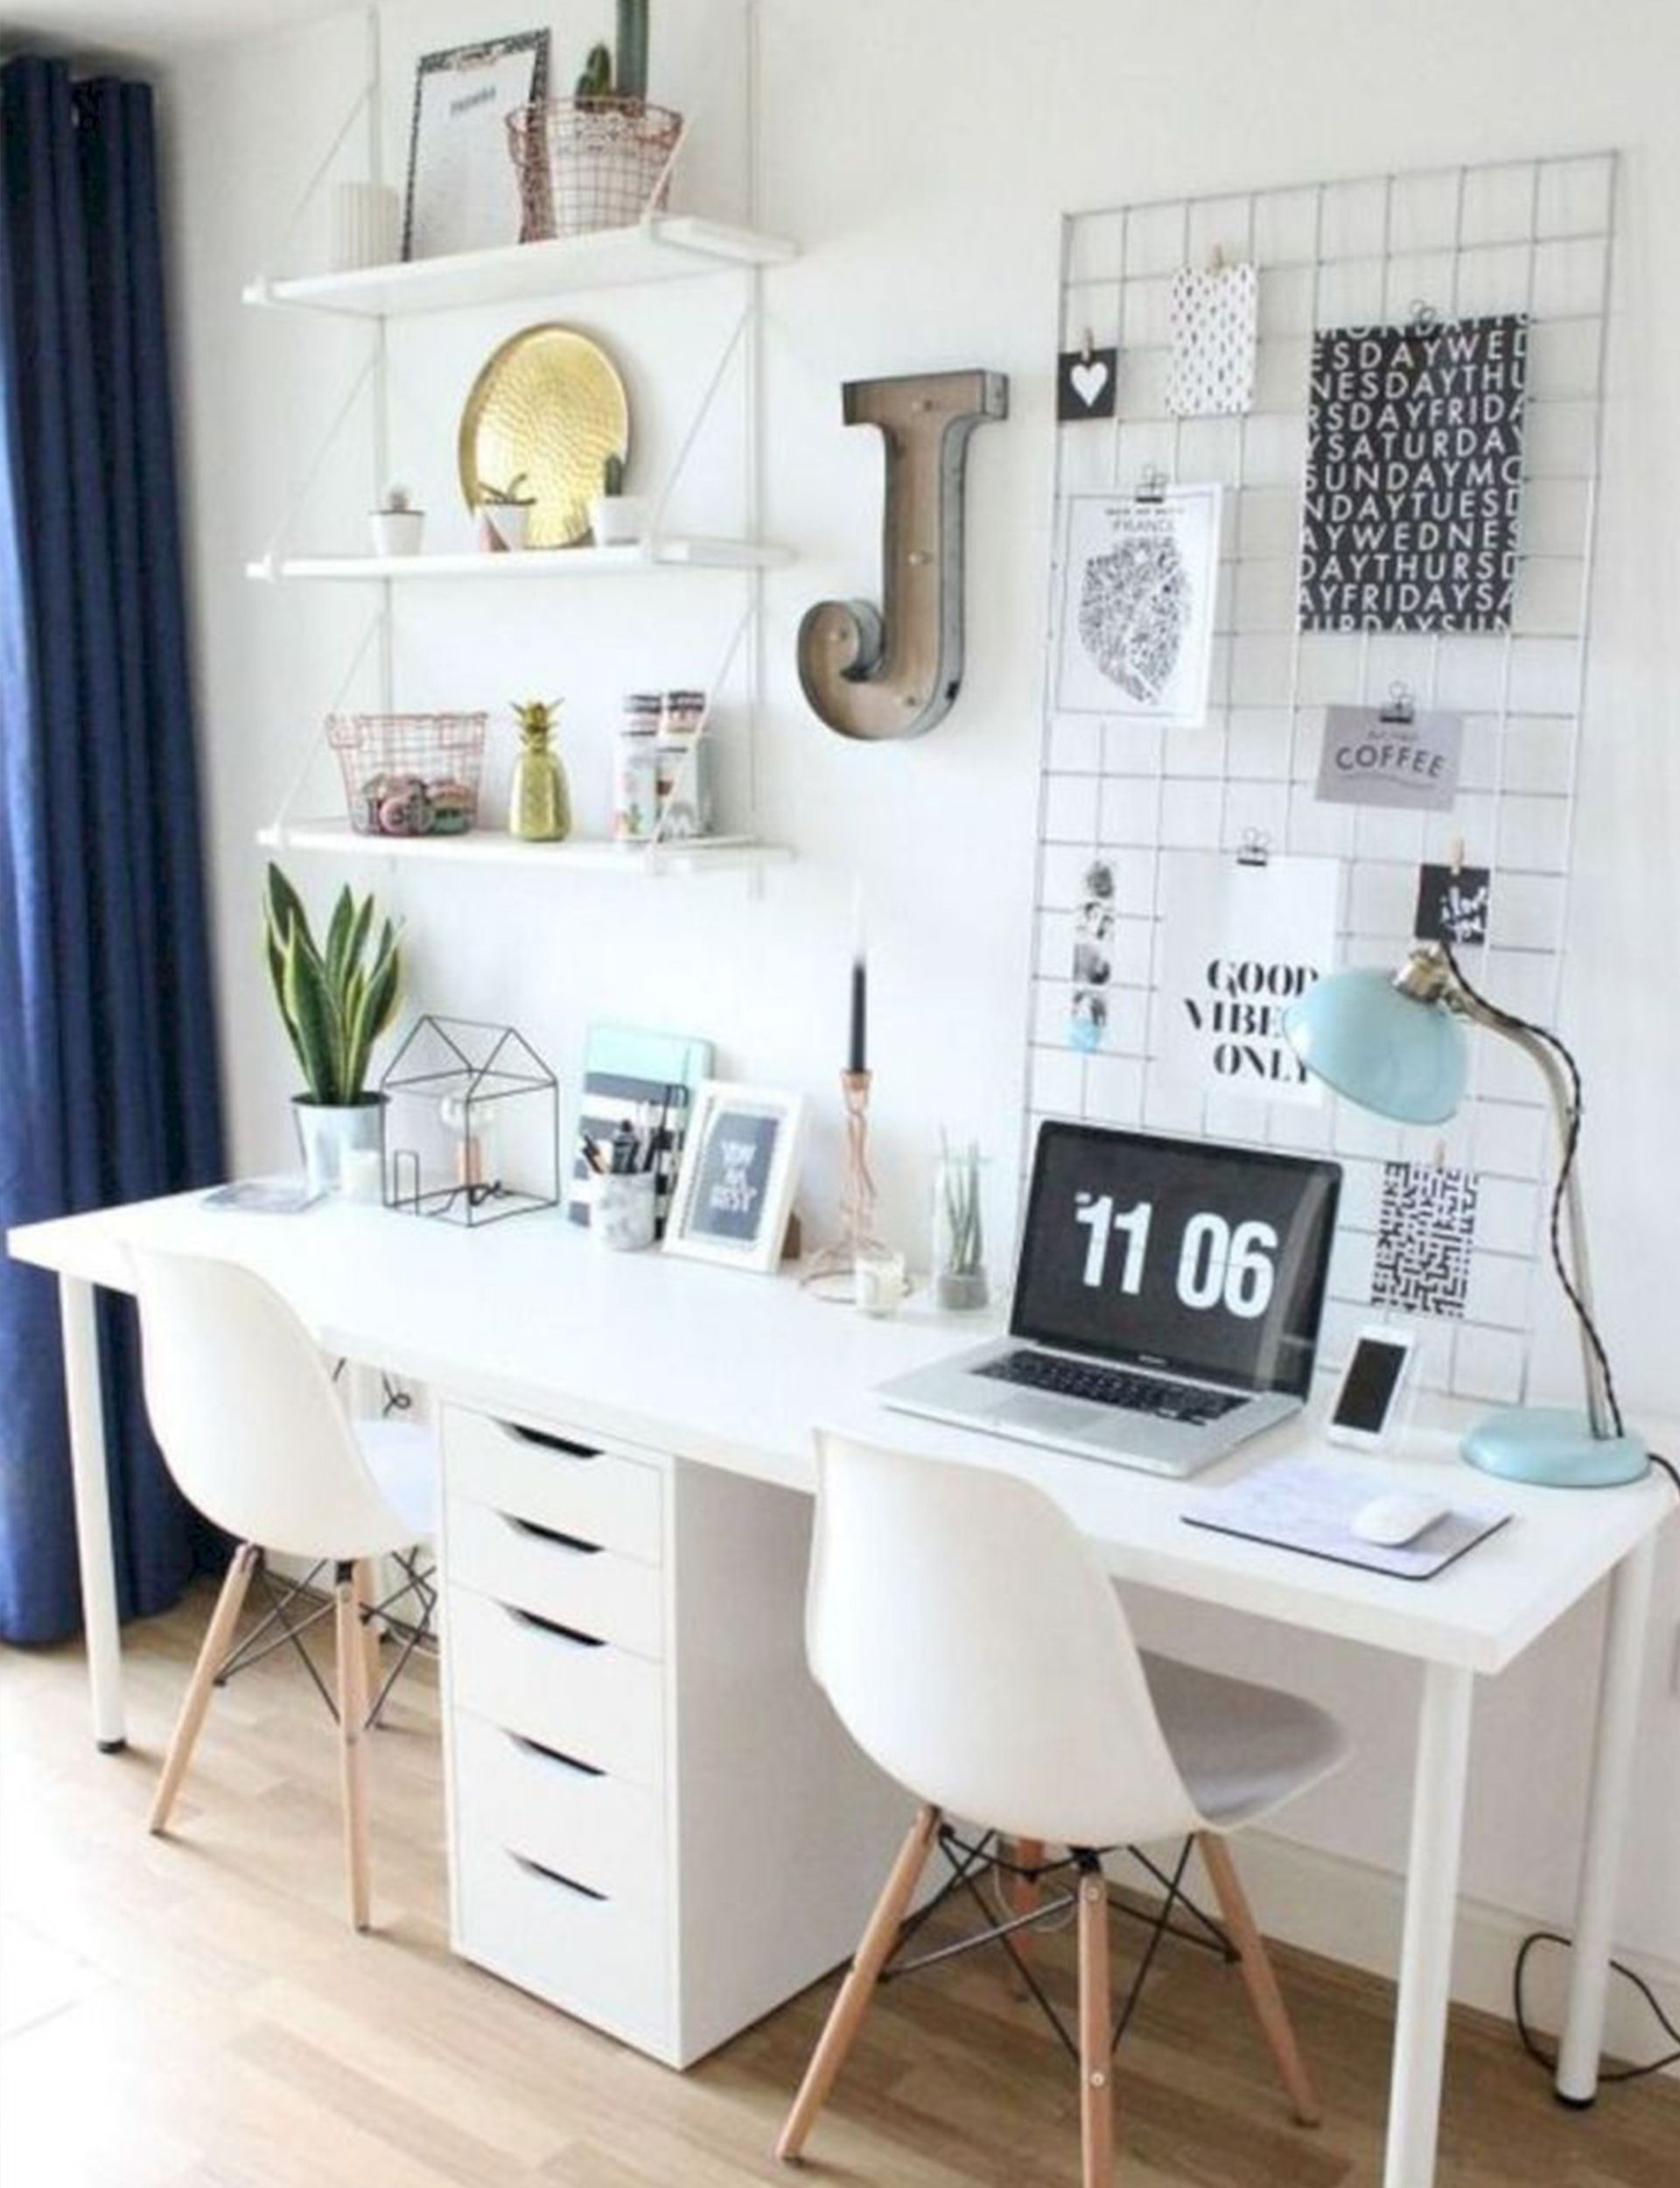 7 Stylish Ways To Make The Most Of A Small Office Space Room